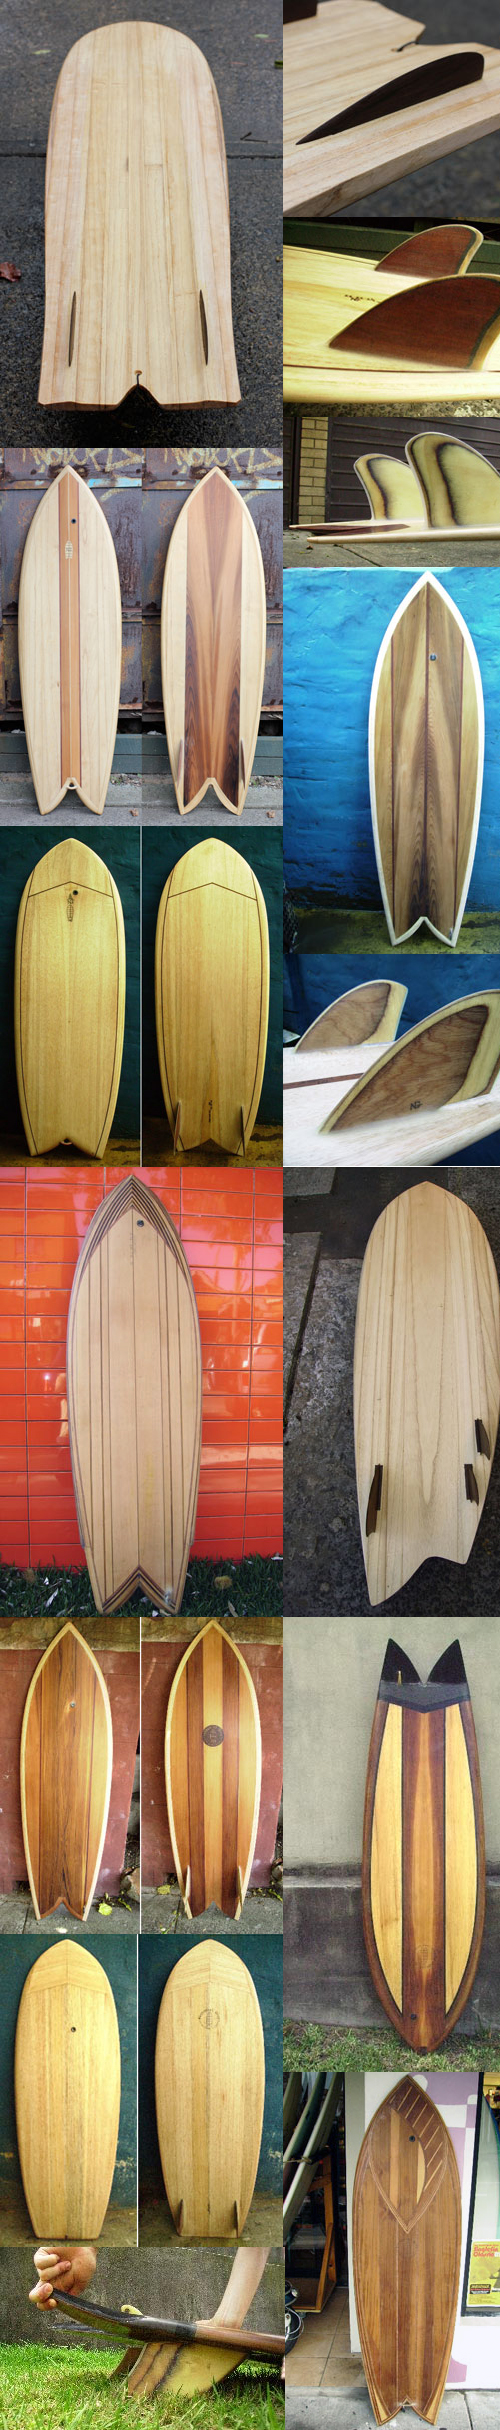 Ode to nathaniel grey surfboards